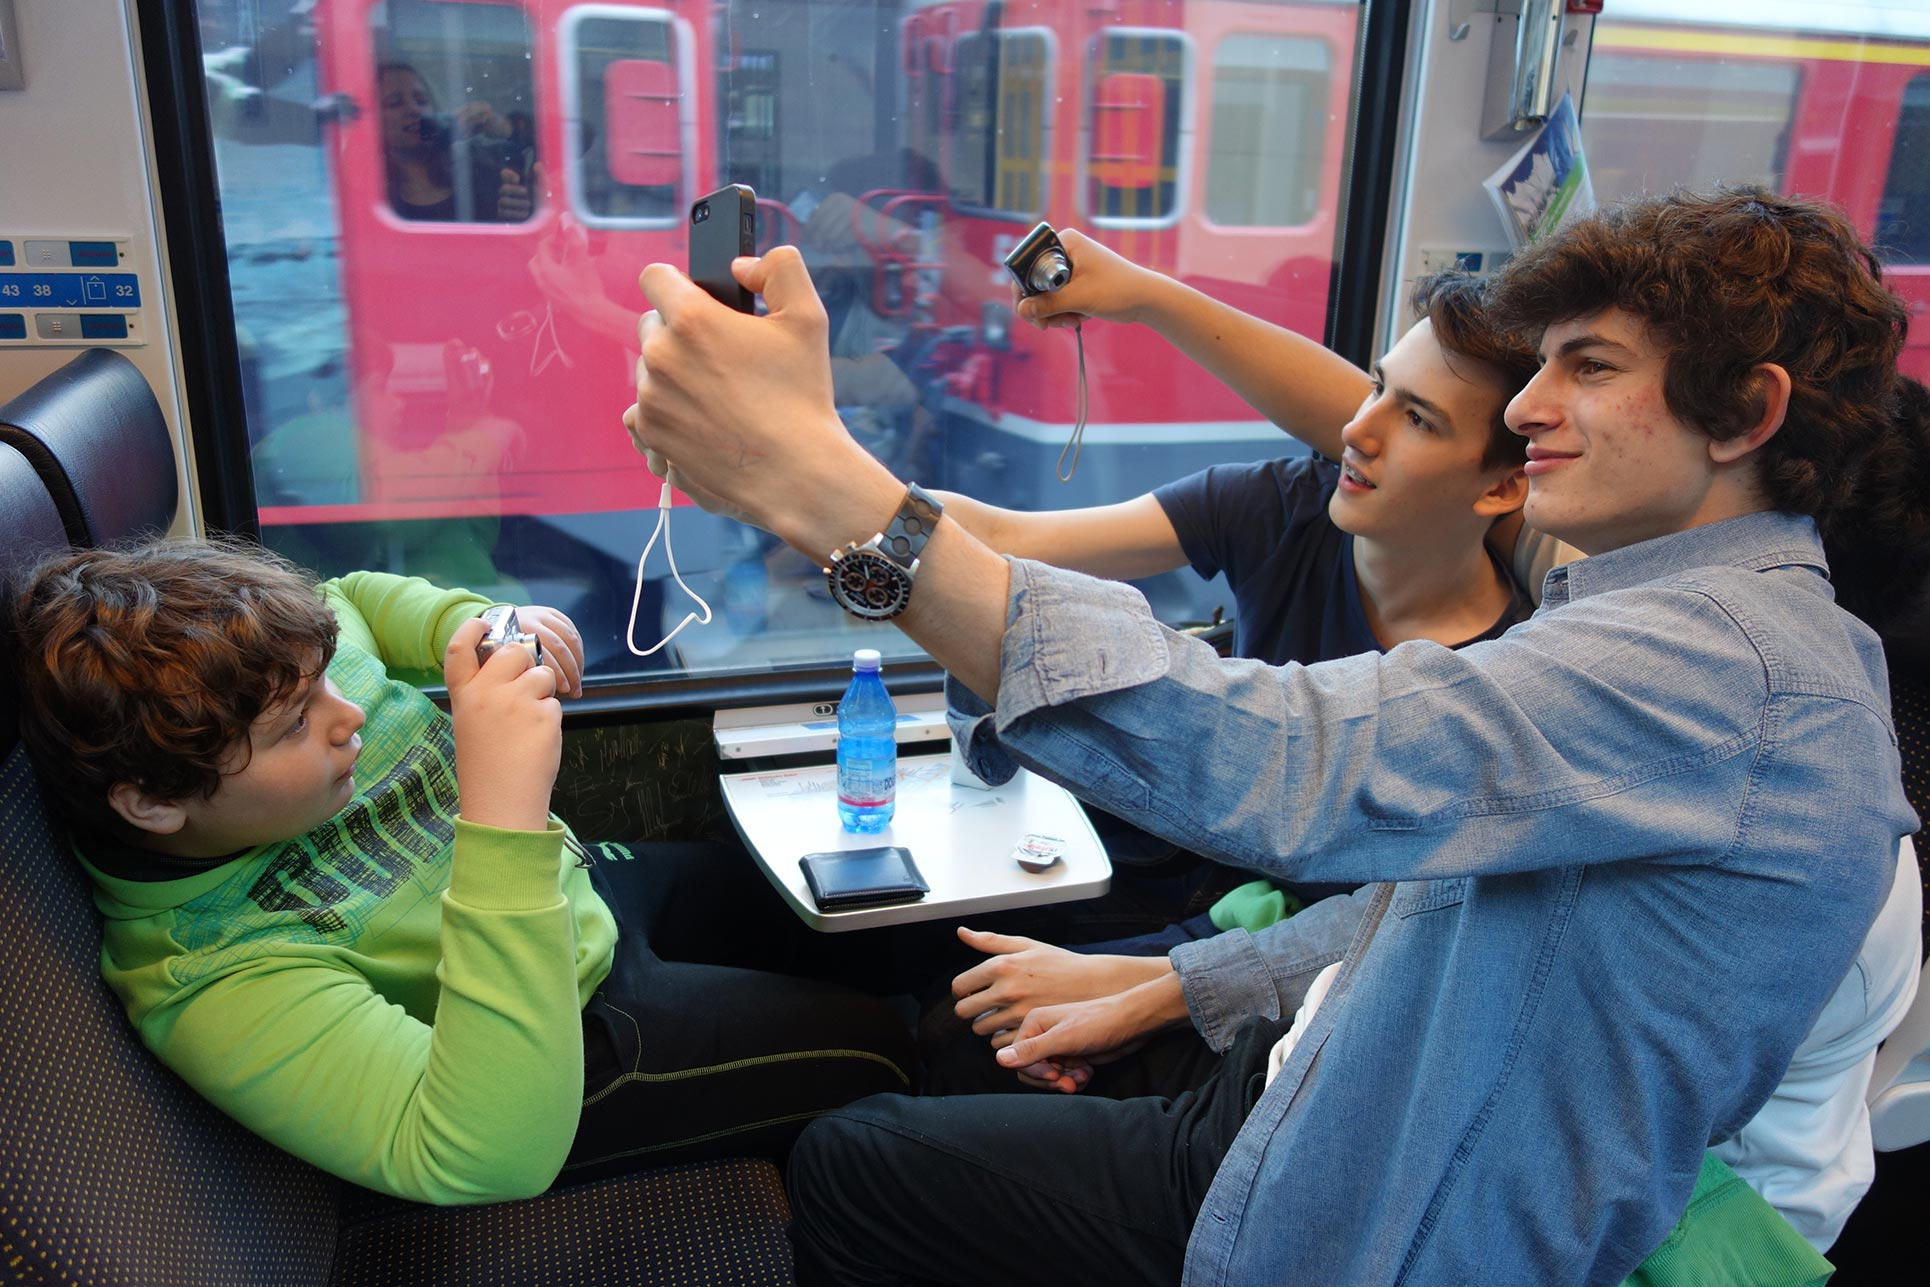 Series of Selfies (Photo: Barbara Fässler)